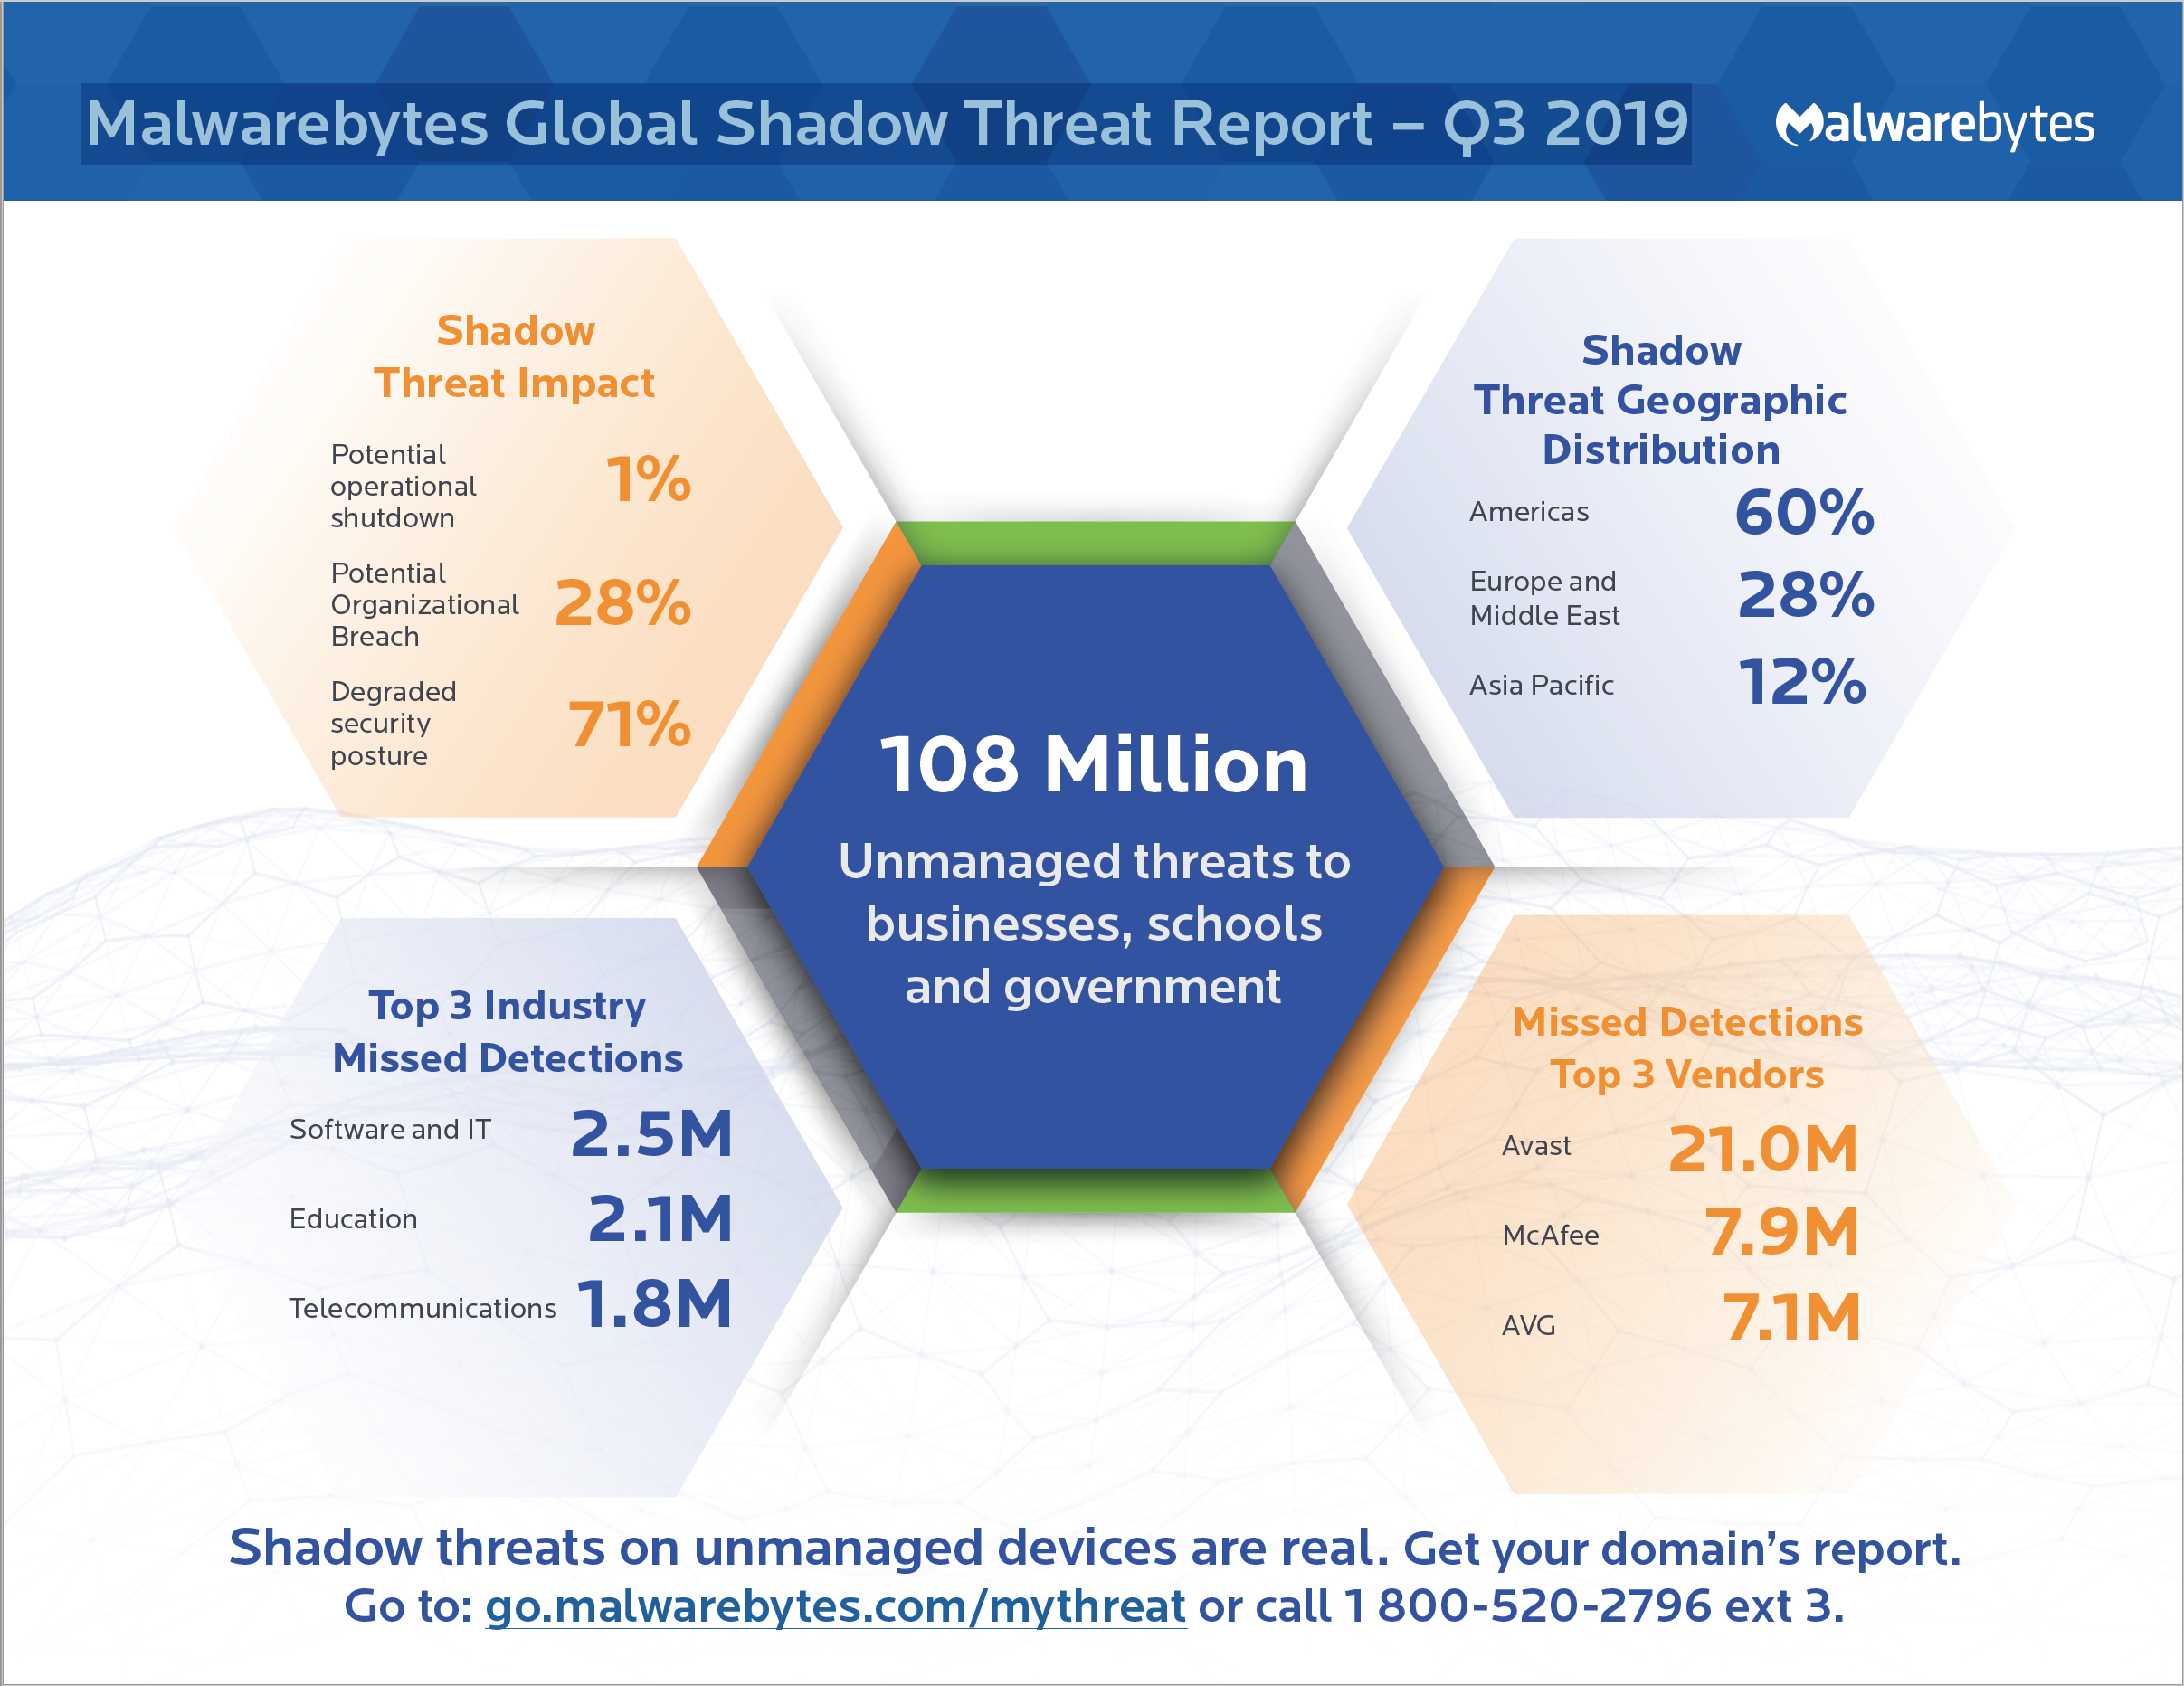 Malwarebytes Global Shadow Threat Report – Q3 2019